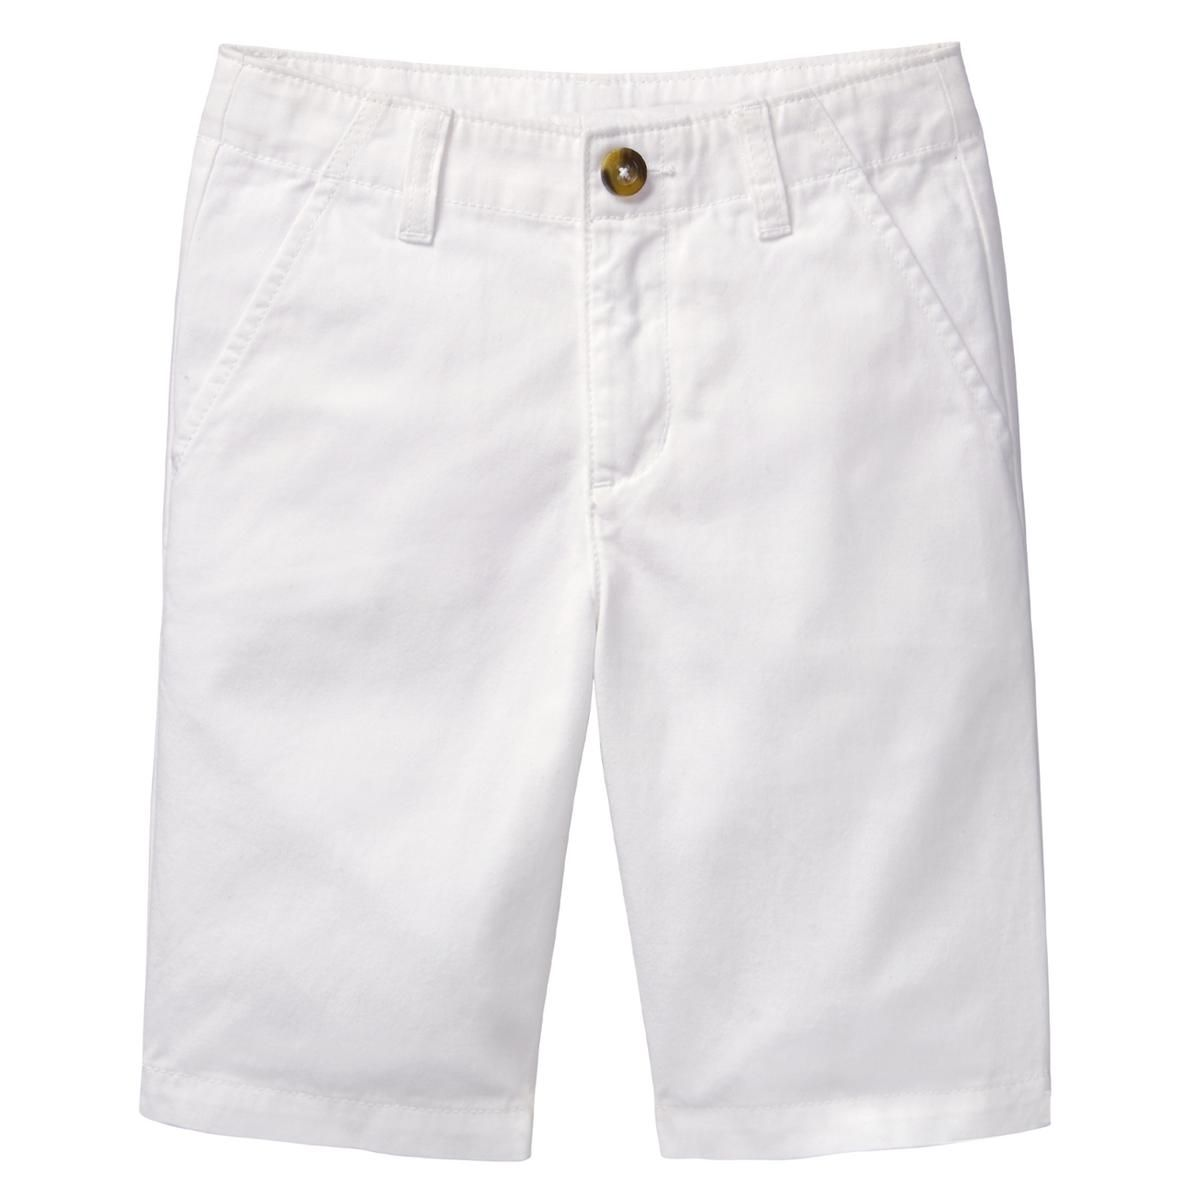 bc3e1bf06a Boy White Chino Shorts by Crazy 8 | Boys | Chino shorts, Clothes ...